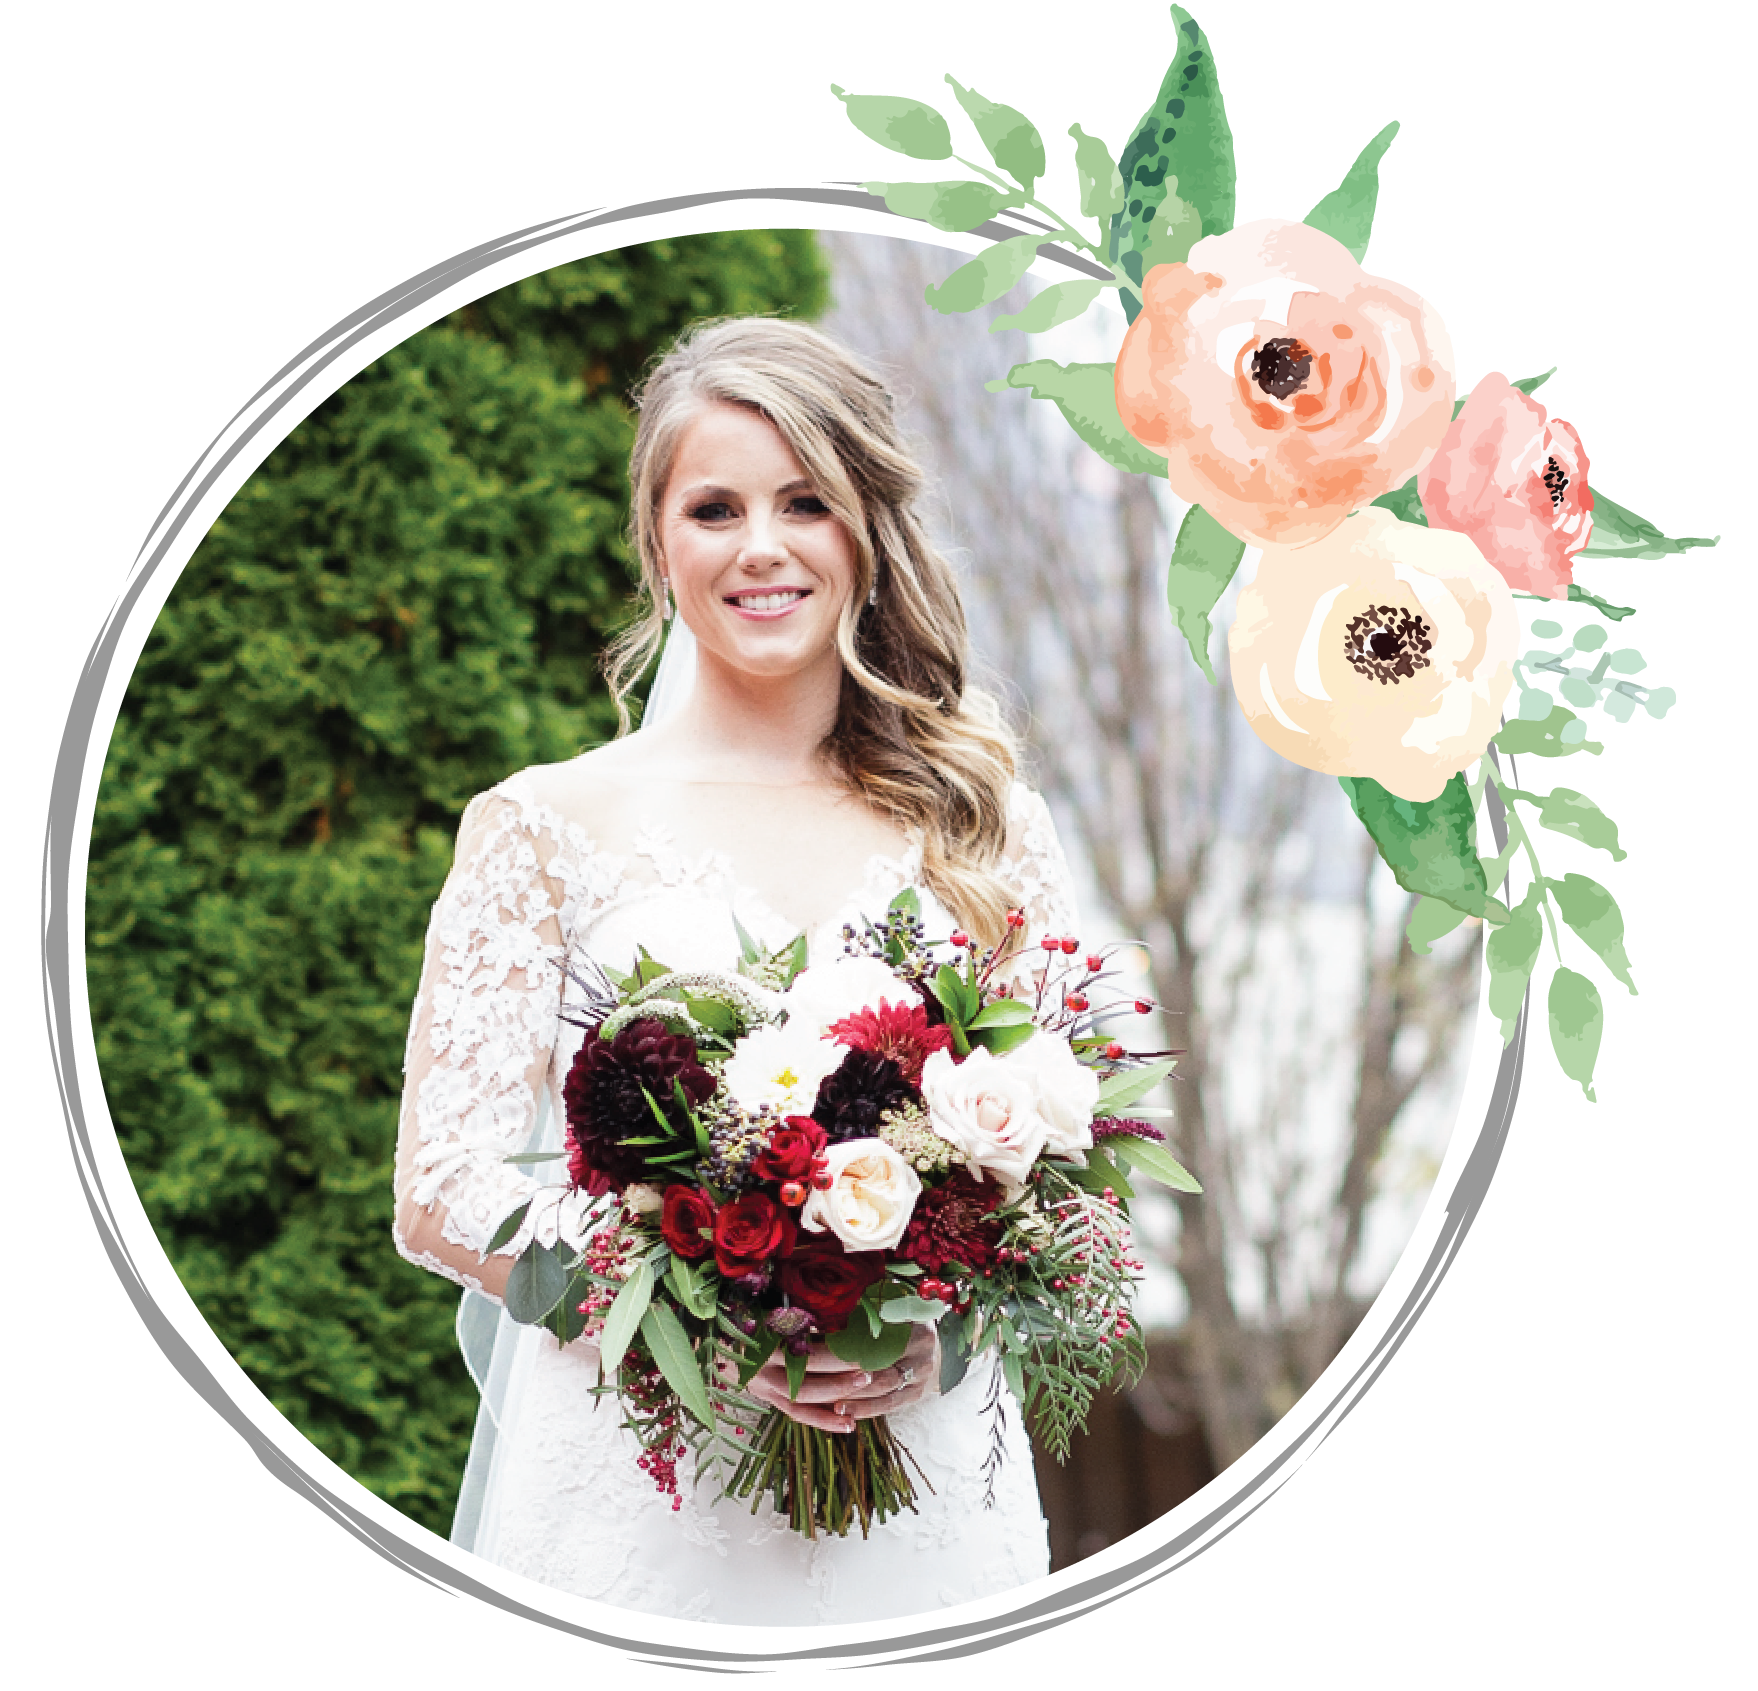 """Andrea is absolutely amazing! - The floral design for my wedding was perfect and exactly what I was looking for. Andrea was so easy to work with, she walked through the venue with my mom and I helping us visualize the options that were available. I have received endless compliments about the flowers, many saying they were the best wedding flowers they have ever seen. We had no problem at the end of the night giving the centerpieces away to our guests so they could take home and enjoy. Thank you, thank you, thank you Andrea for capturing exactly what I was looking for!!""- Alli, Mavris Arts & Event Center, Downtown Indianapolis"